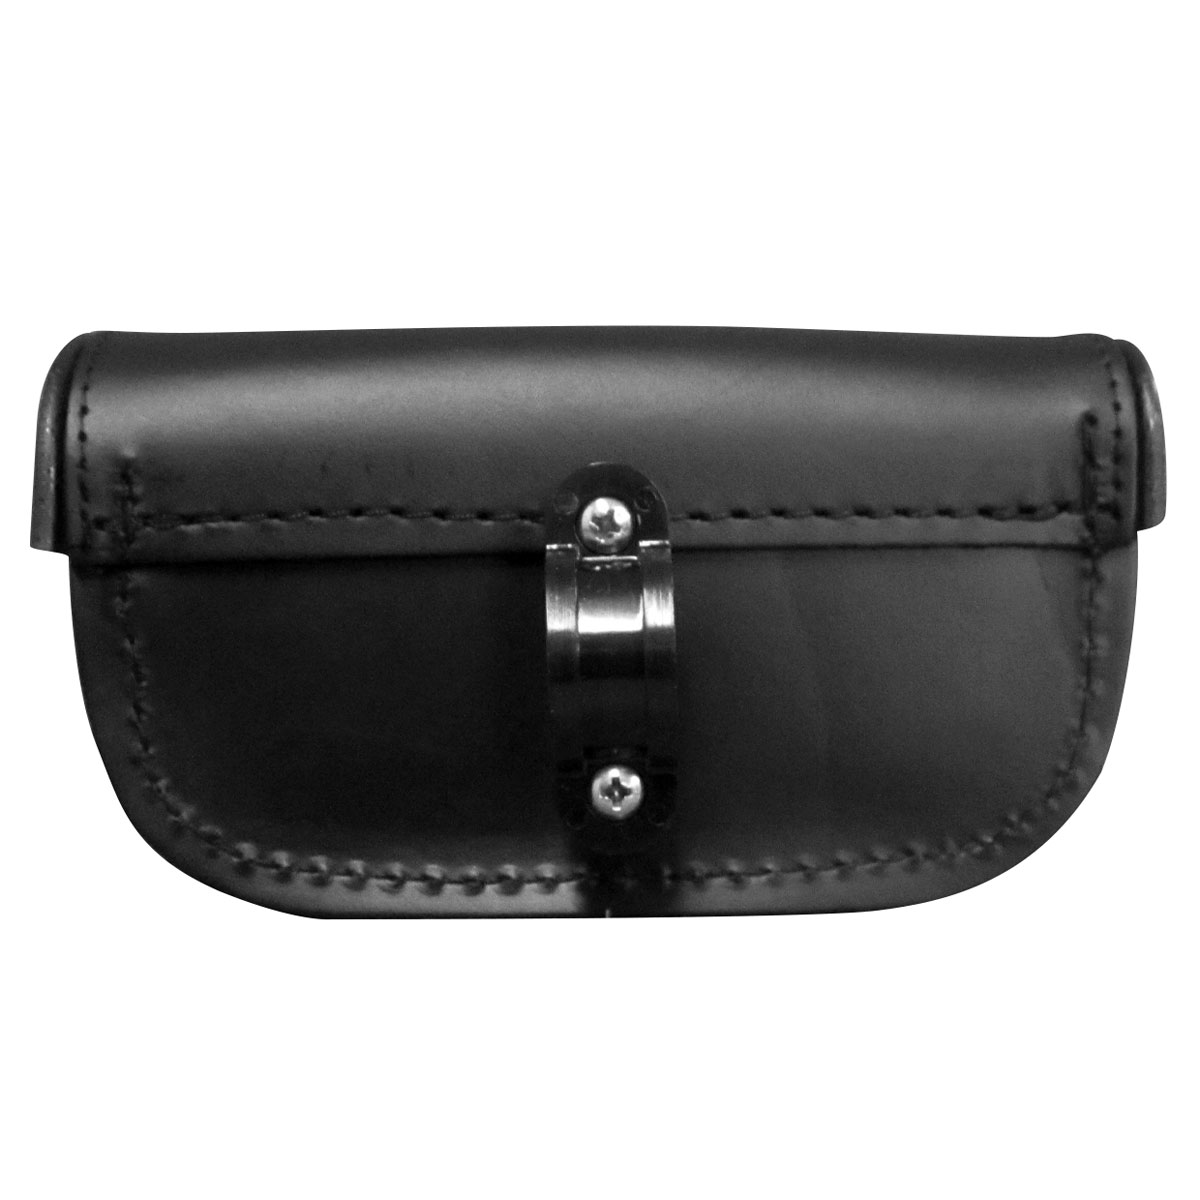 Leatherworks, Inc. Handlebar Bag